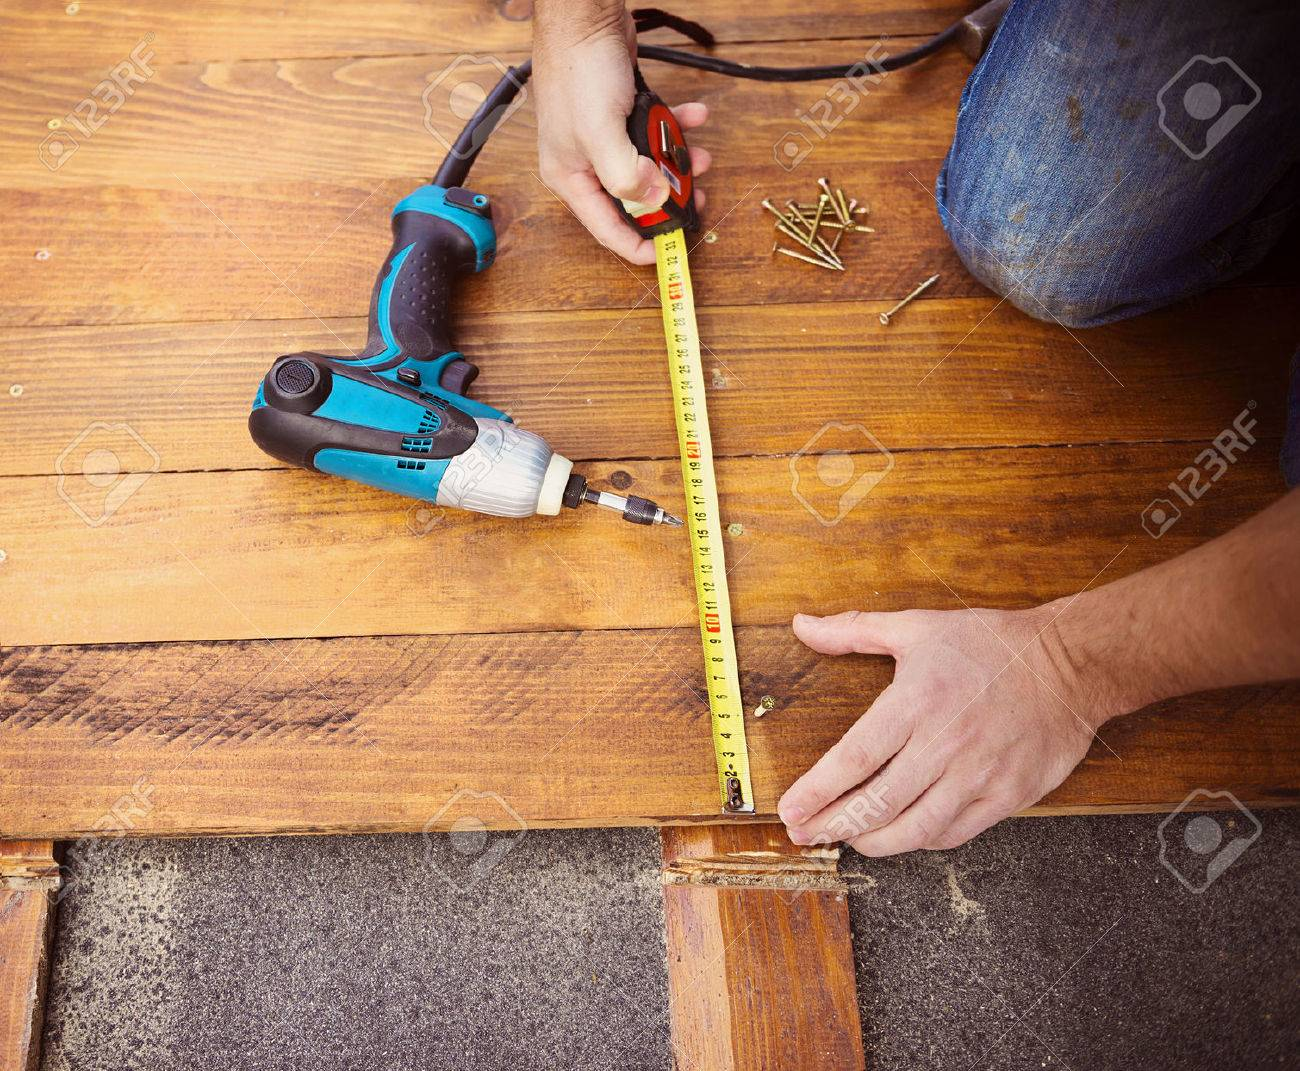 Close Up Of Male Hands Measuring Wood Flooring With Tape Measure Stock Photo 32857230